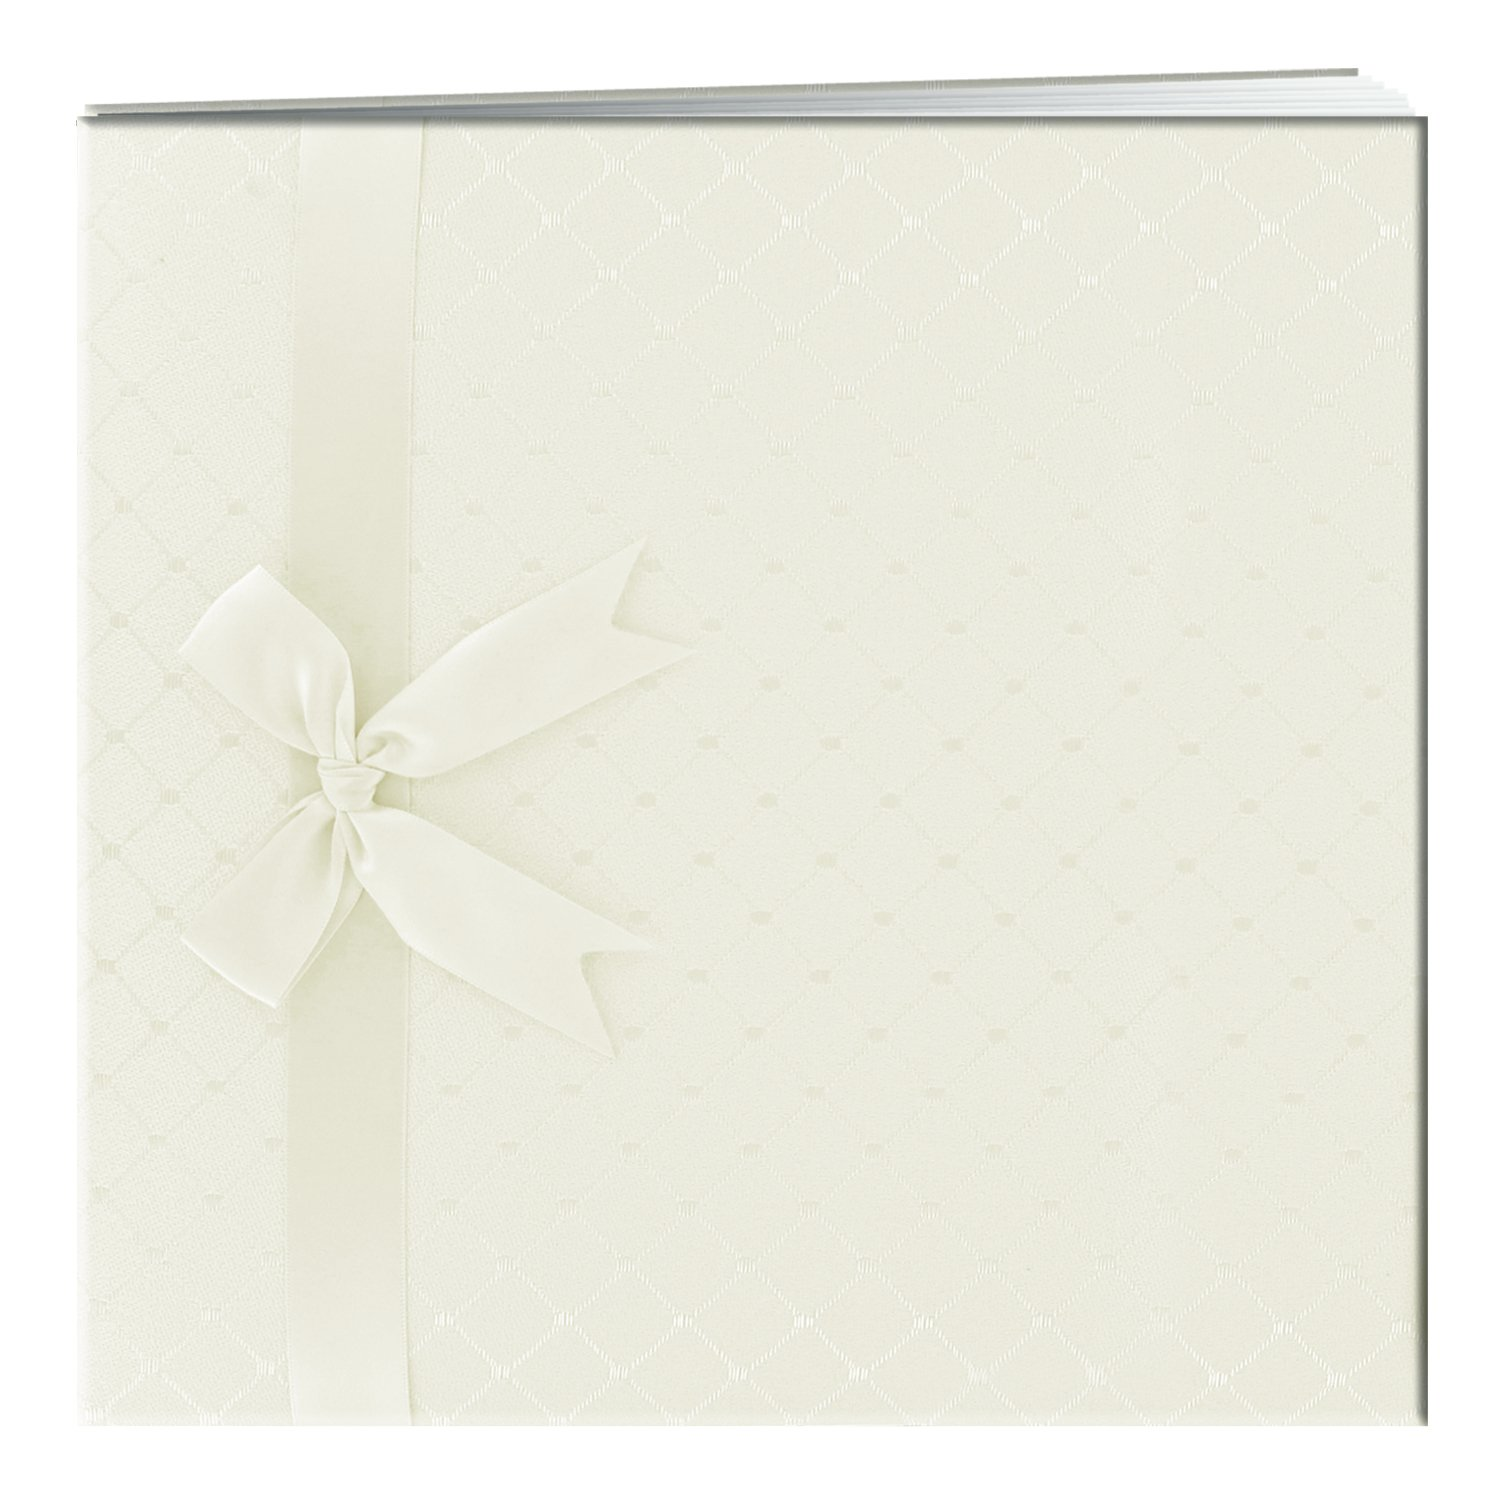 Pioneer 12 Inch by 12 Inch Postbound Diamond Pattern Fabric Cover Memory Book, Ivory